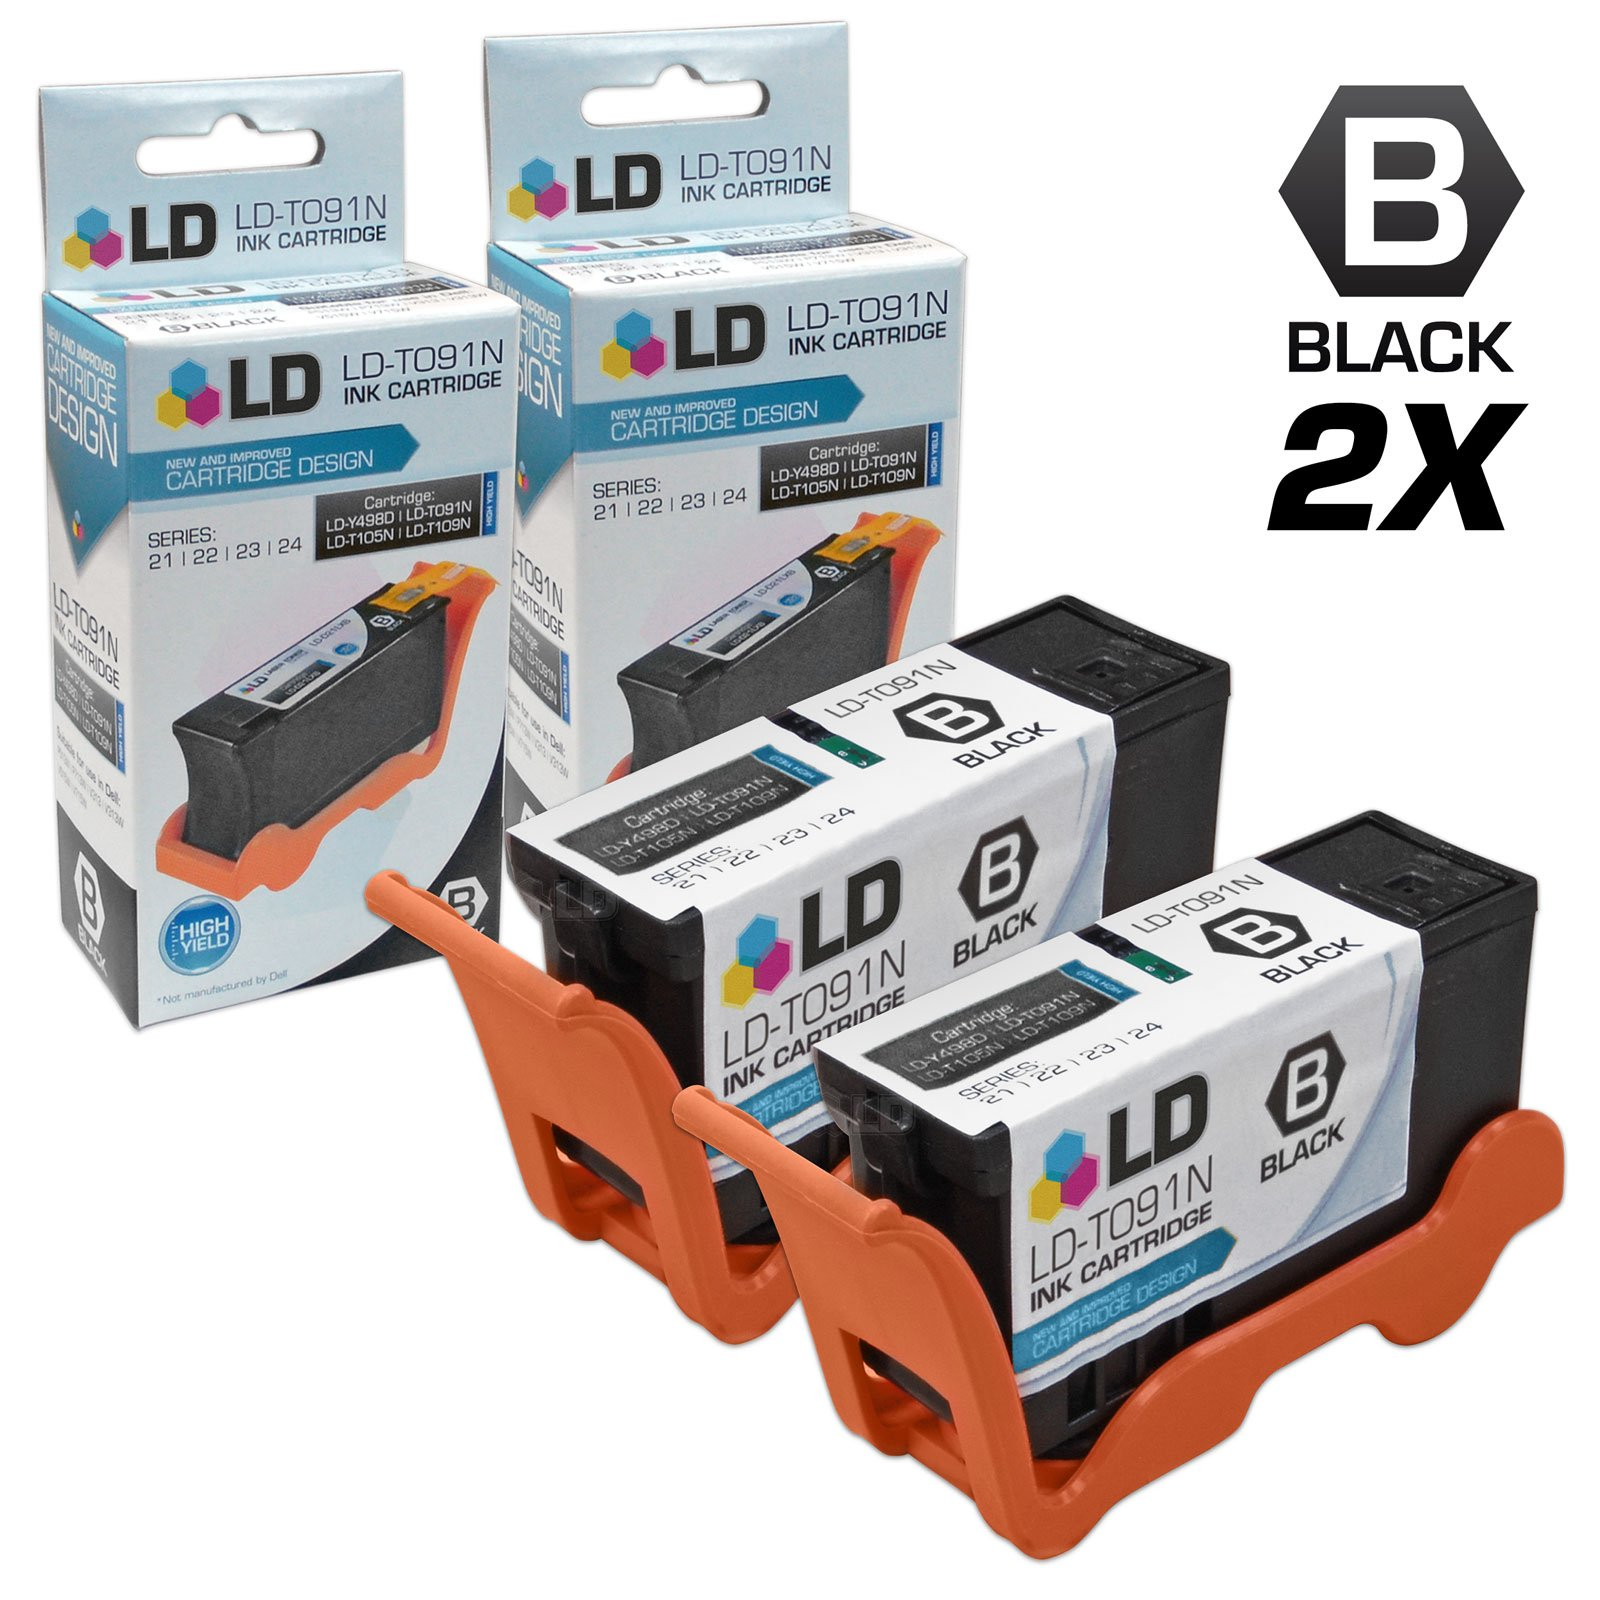 LD Compatible Replacements for Dell T091N (Series 22) Set of 2 High Yield Black Inkjet Cartridges for use in Dell Photo all-in-one P513w, V313, and V313w Printers